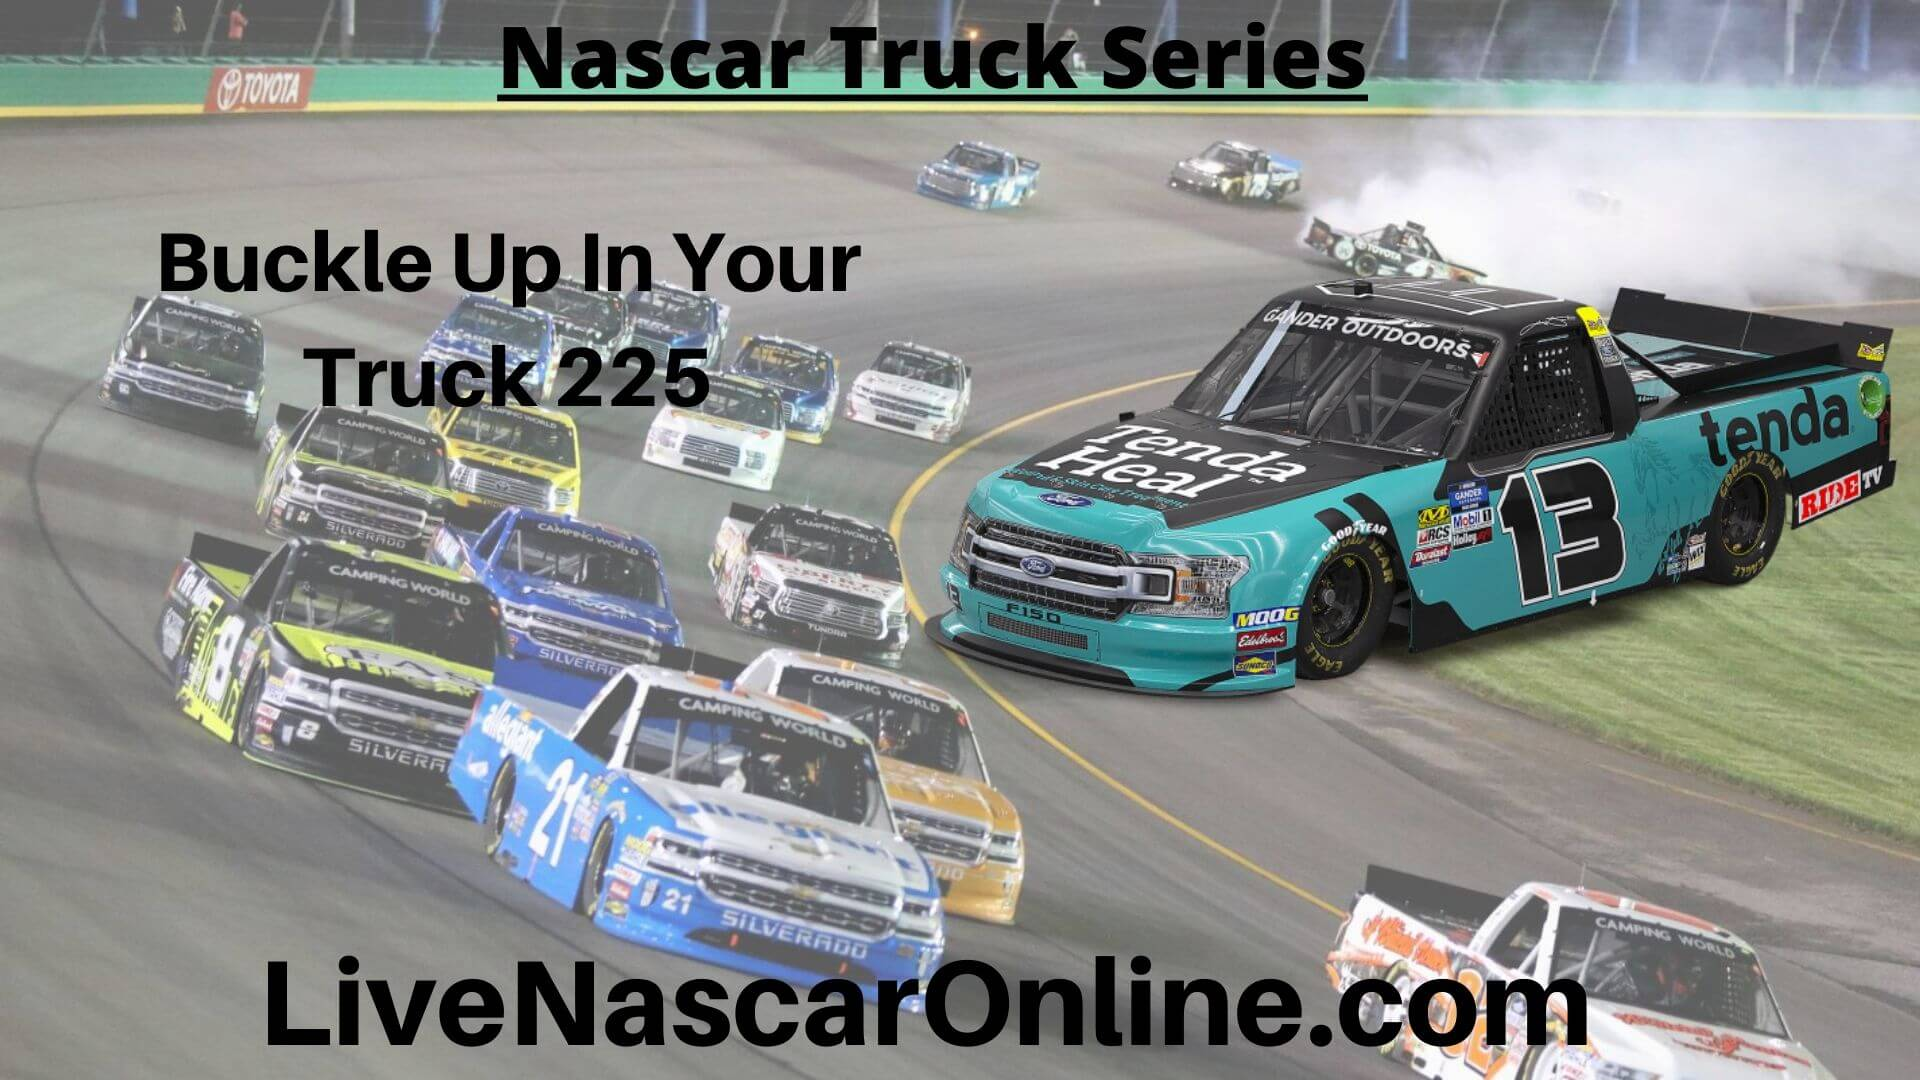 live-nascar-truck-buckle-up-in-your-truck-225-online